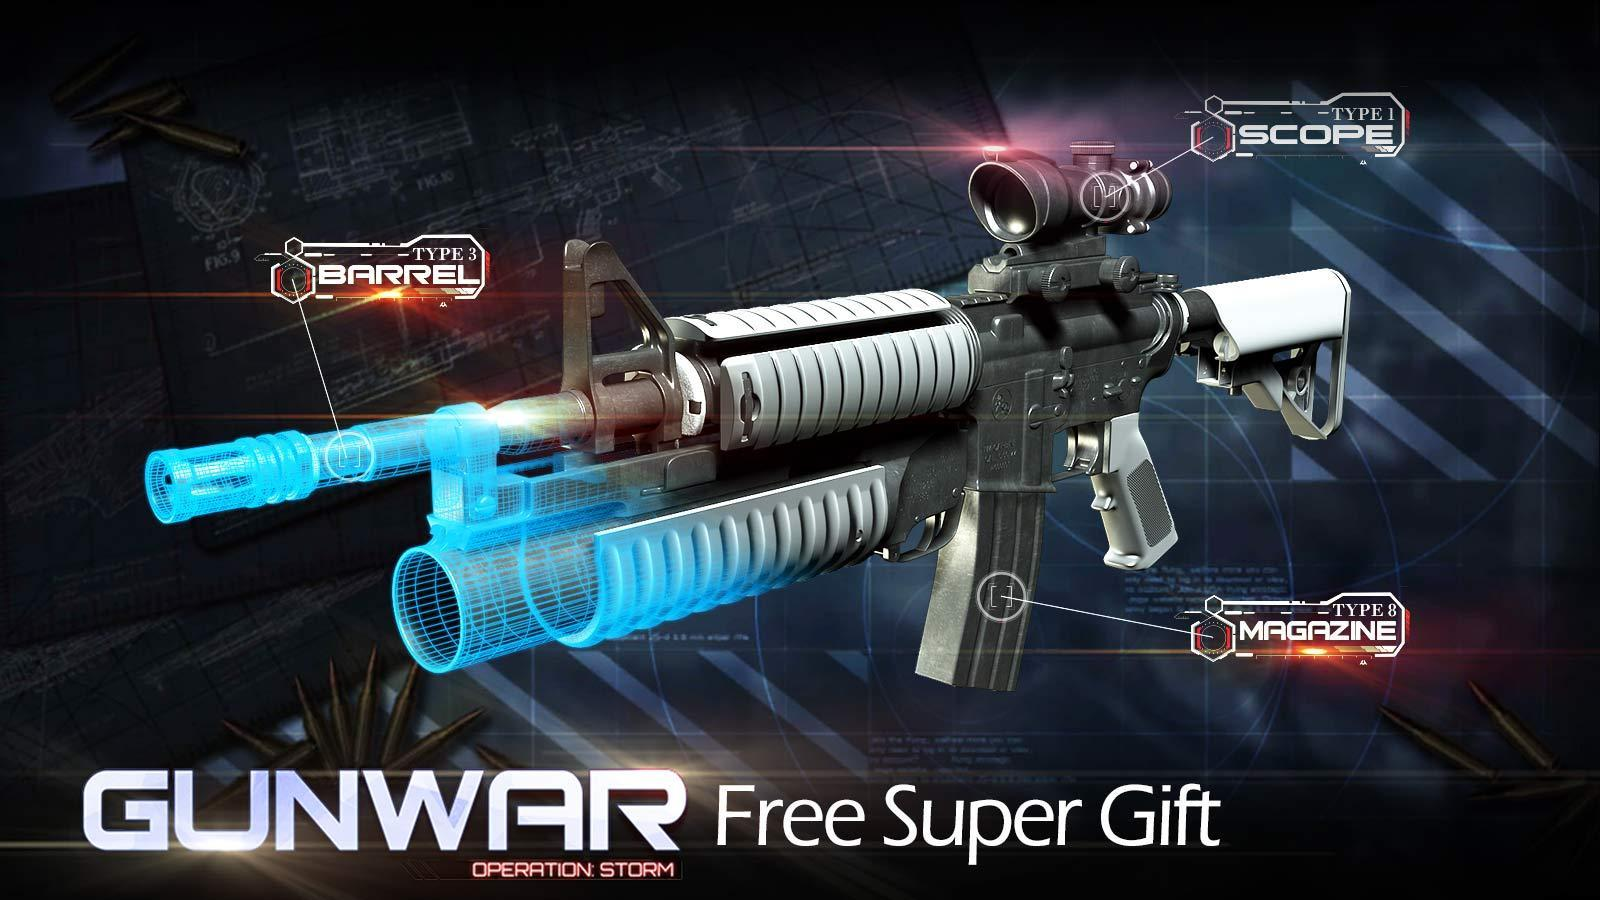 Gun War for Android - APK Download